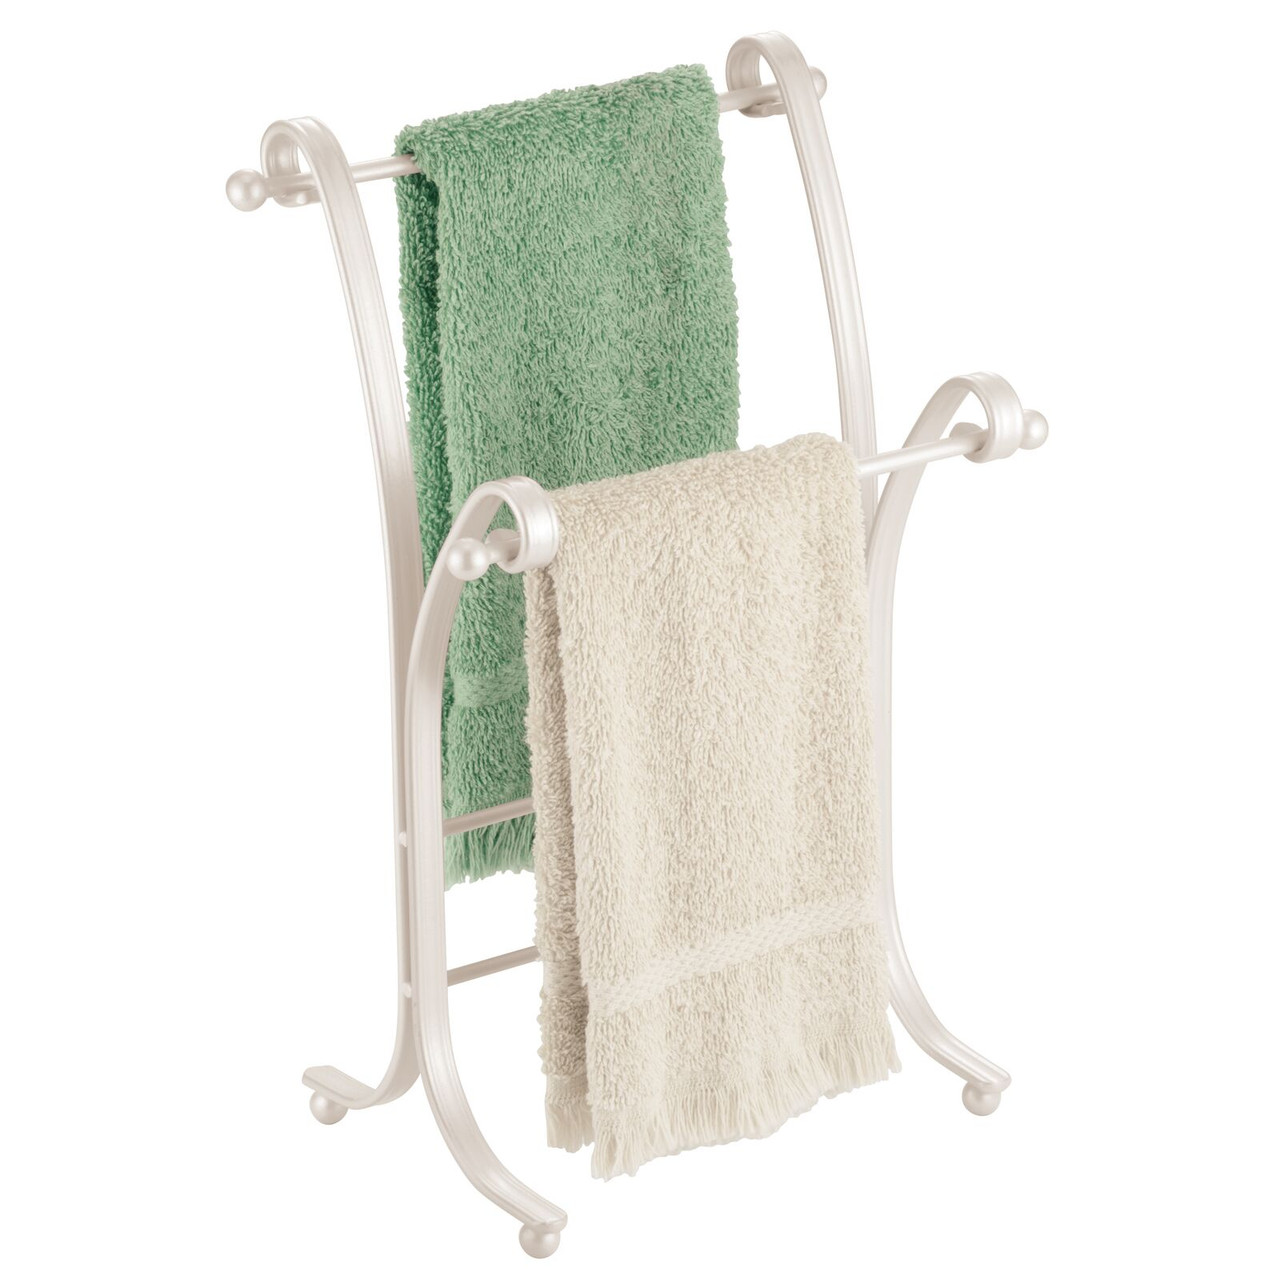 Fingertip Towel with Fruit on it Towel approx 12 inches long